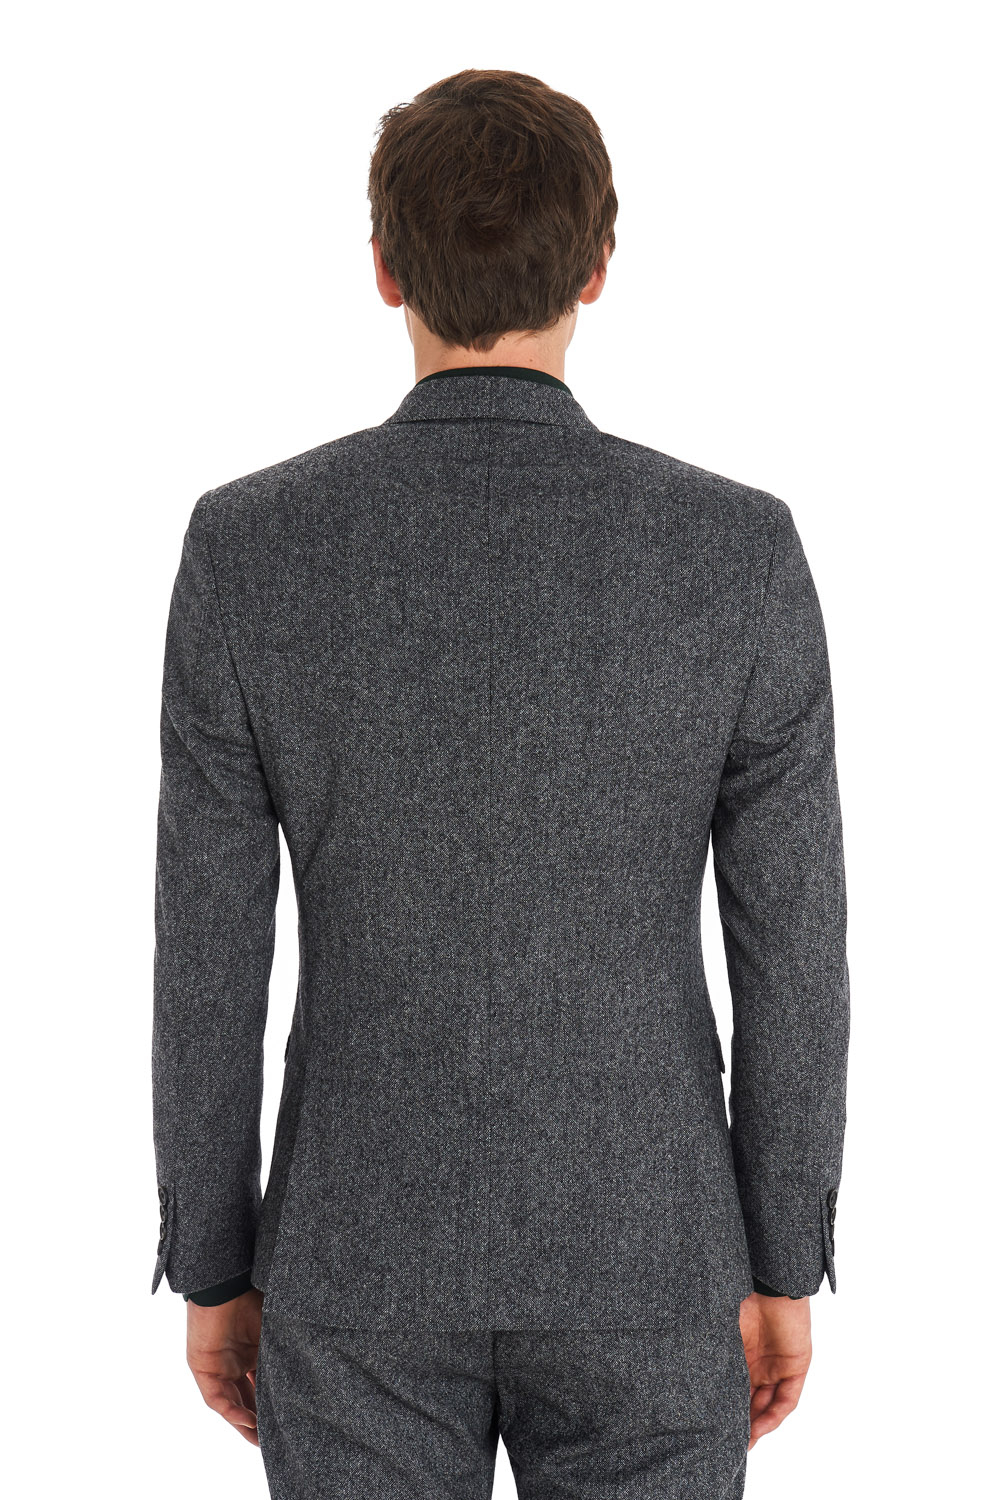 Shop for BLACK S Slim Fit Tweed Jacket online at $ and discover fashion at heresfilmz8.ga Cheapest and Latest women & men fashion site including categories such as dresses, shoes, bags and jewelry with free shipping all over the world.